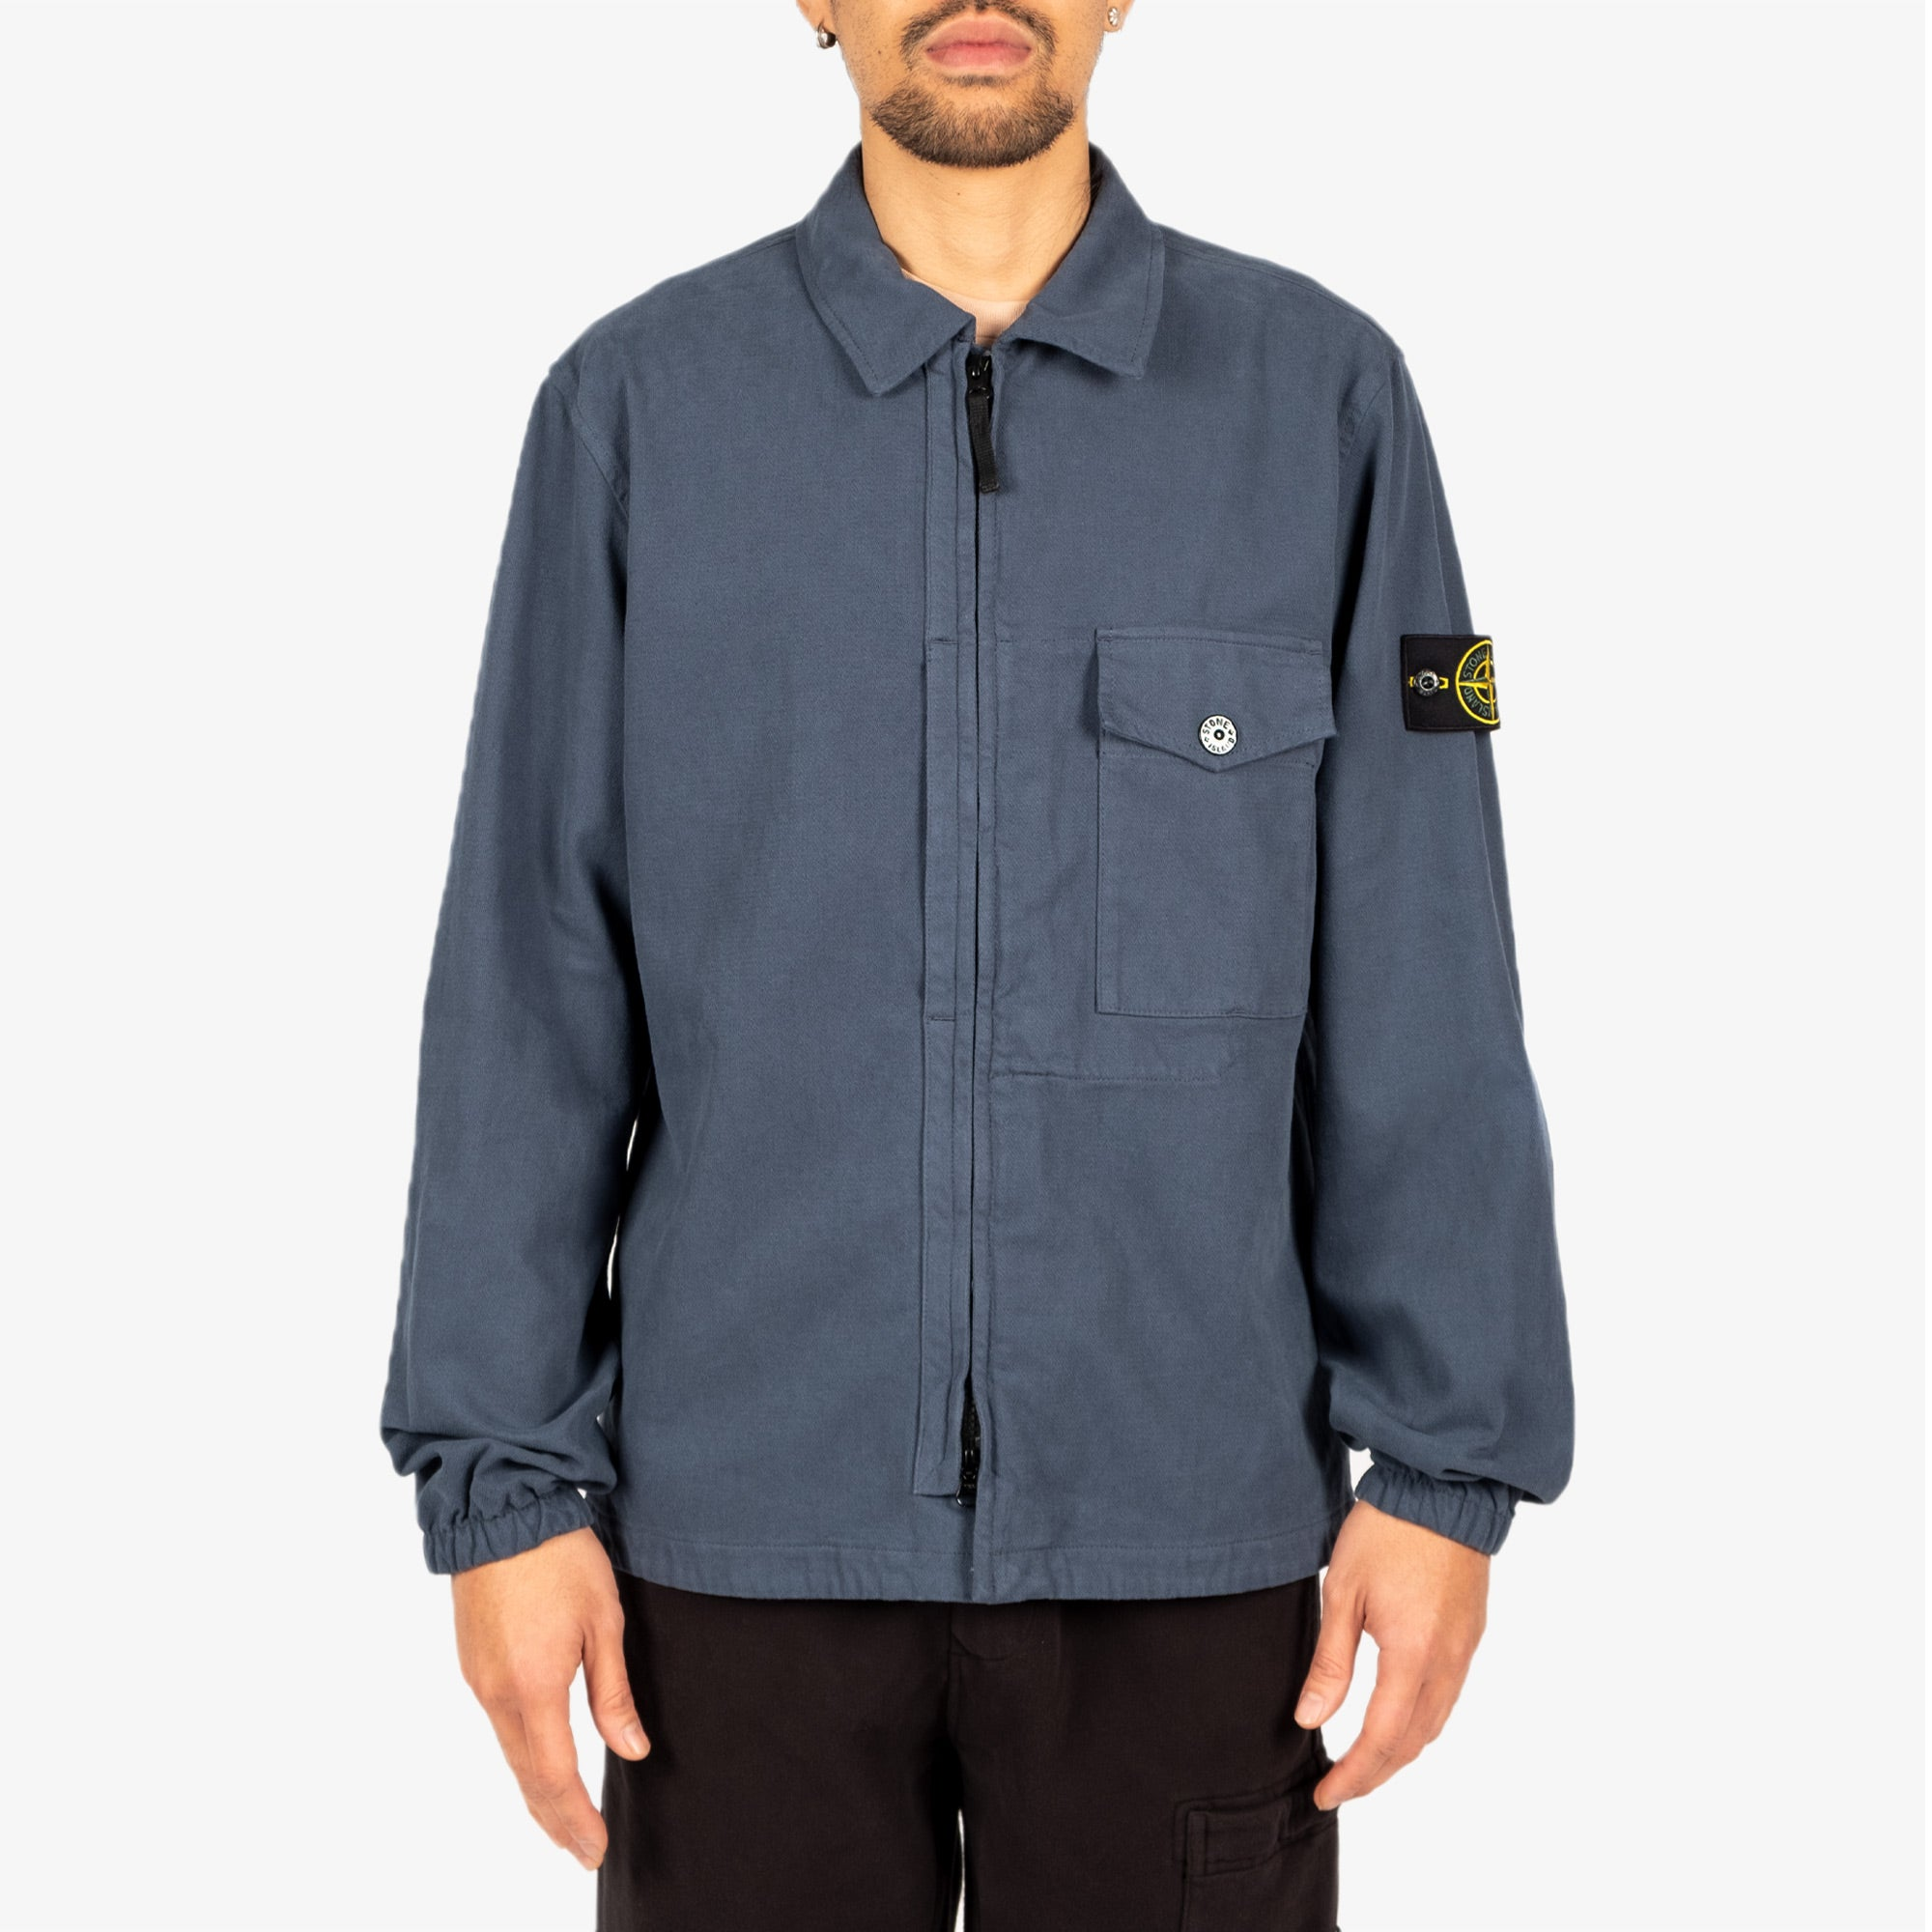 Stone Island Textured Brushed Recycled Cotton Overshirt 10704 - Cobalt Blue 2